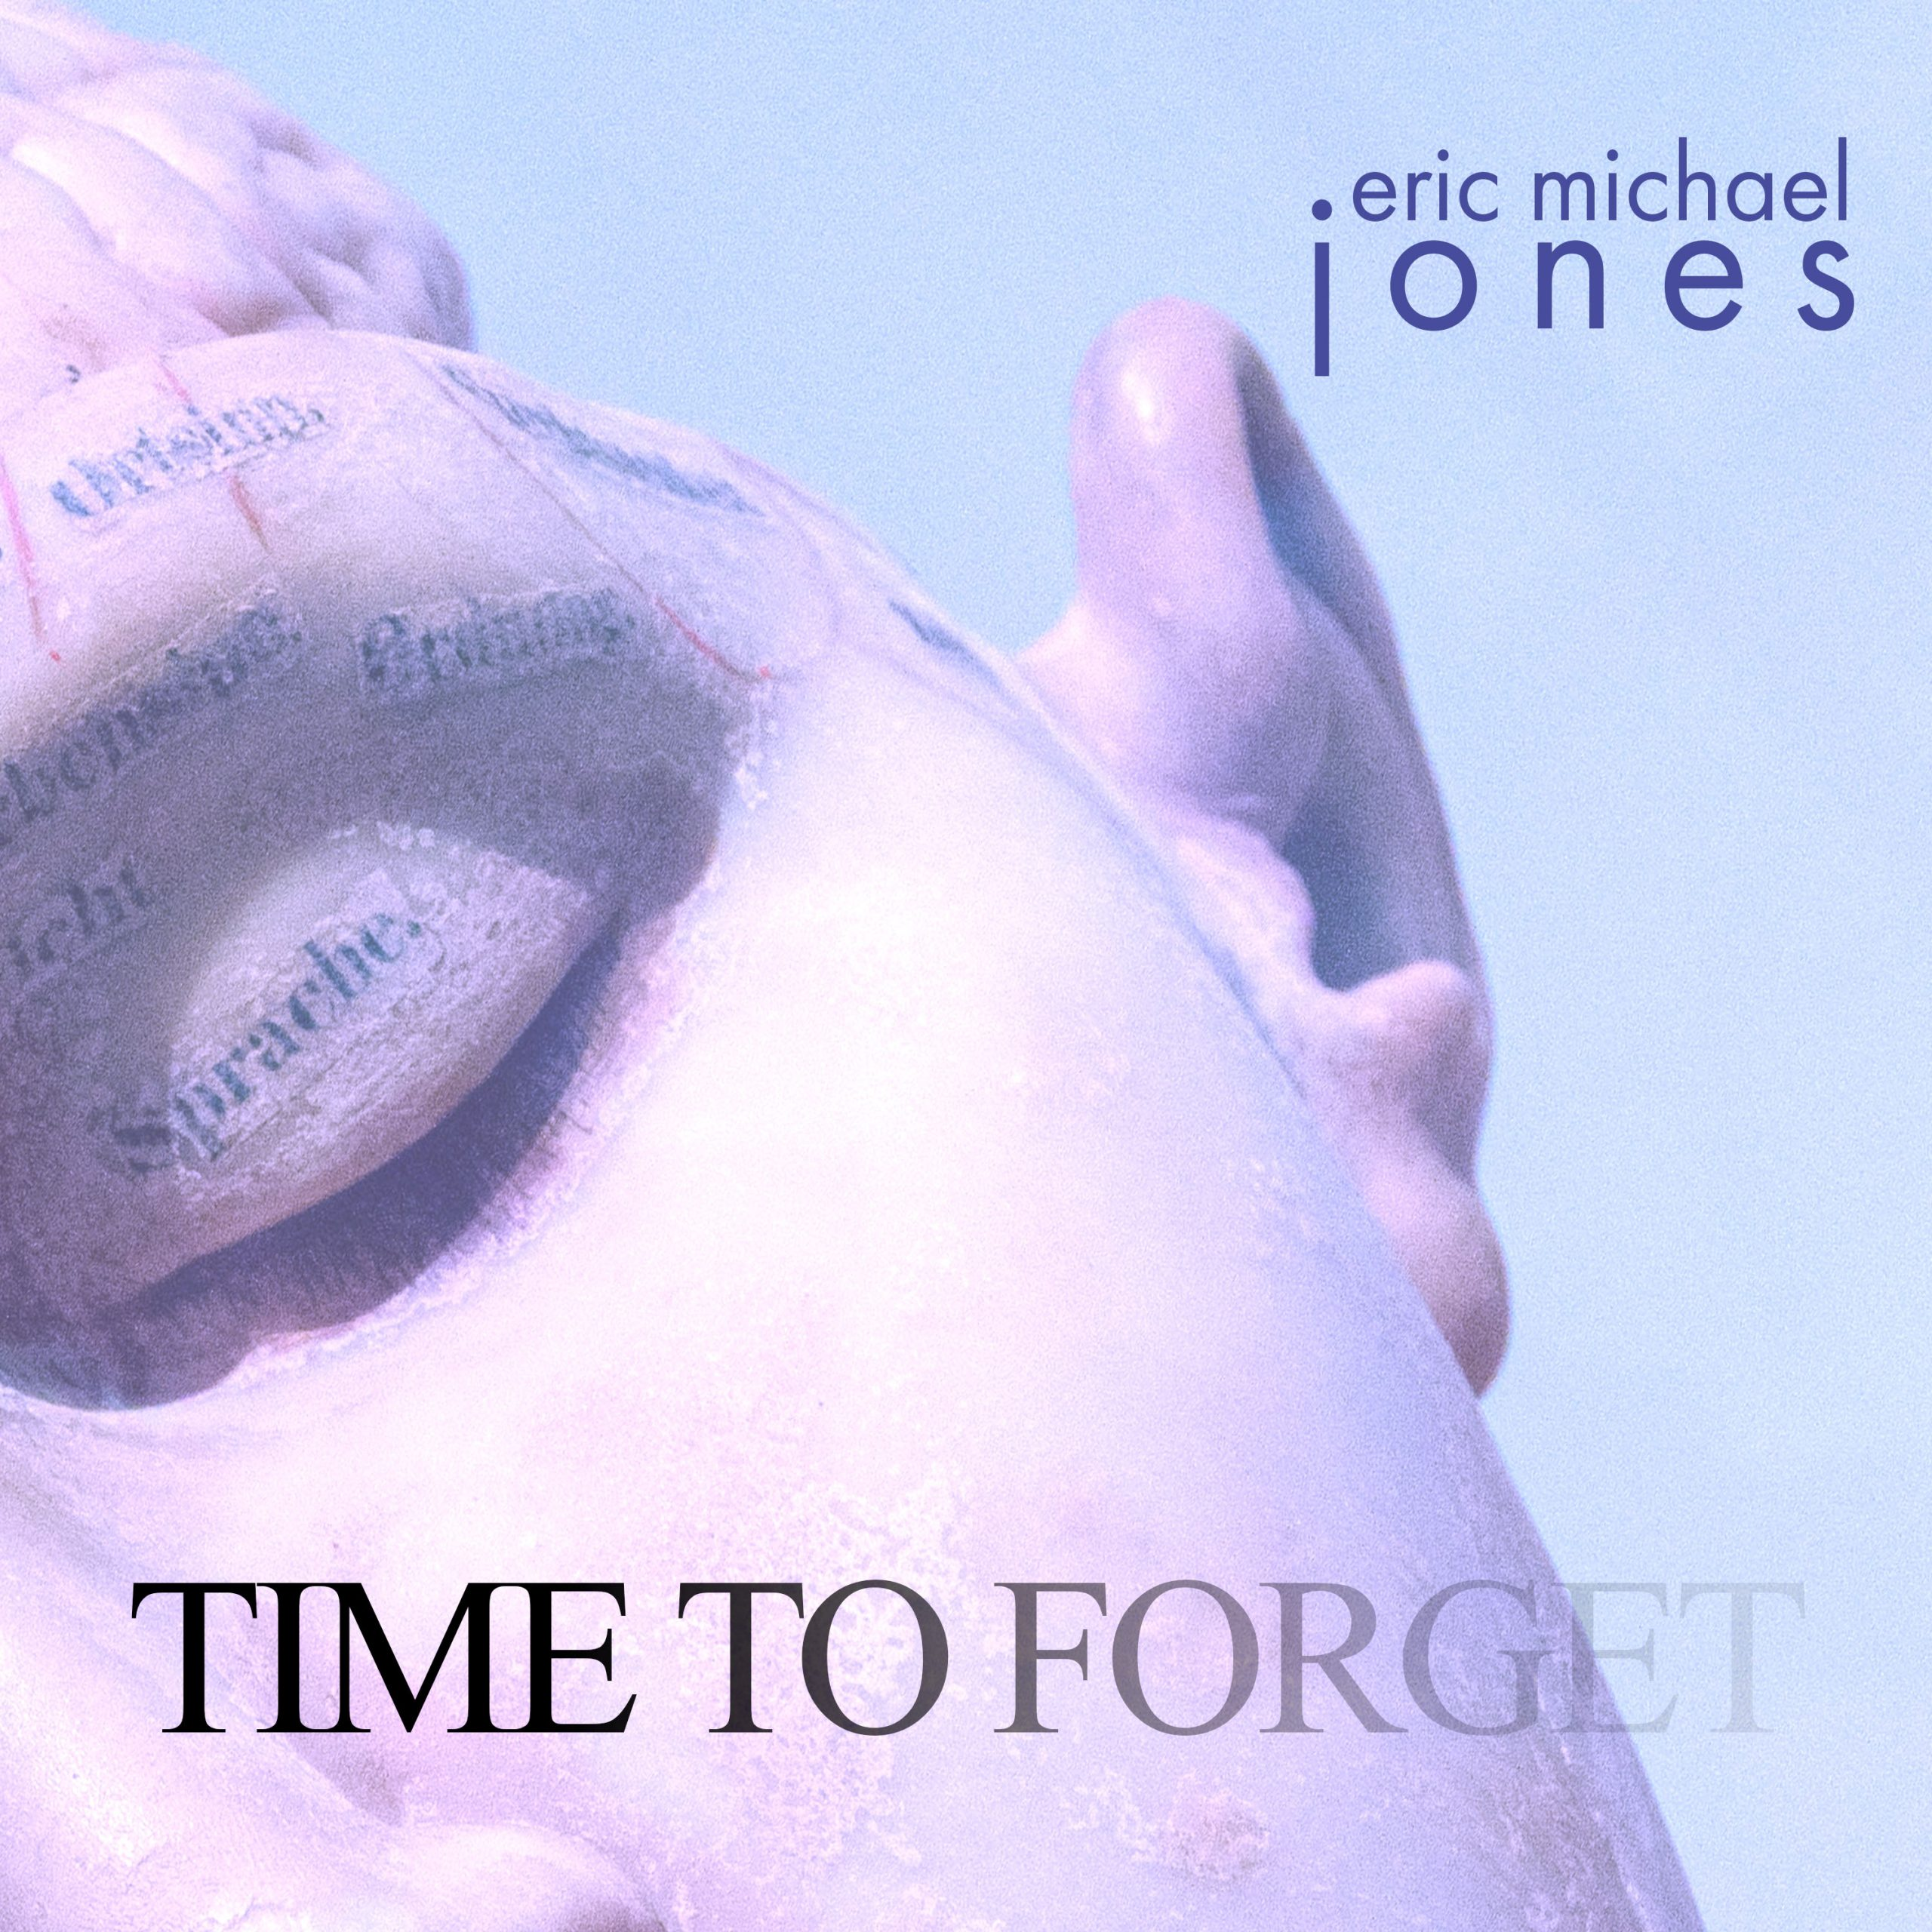 Cover art for Time To Forget showing a sculpture of a head with the brain exposed